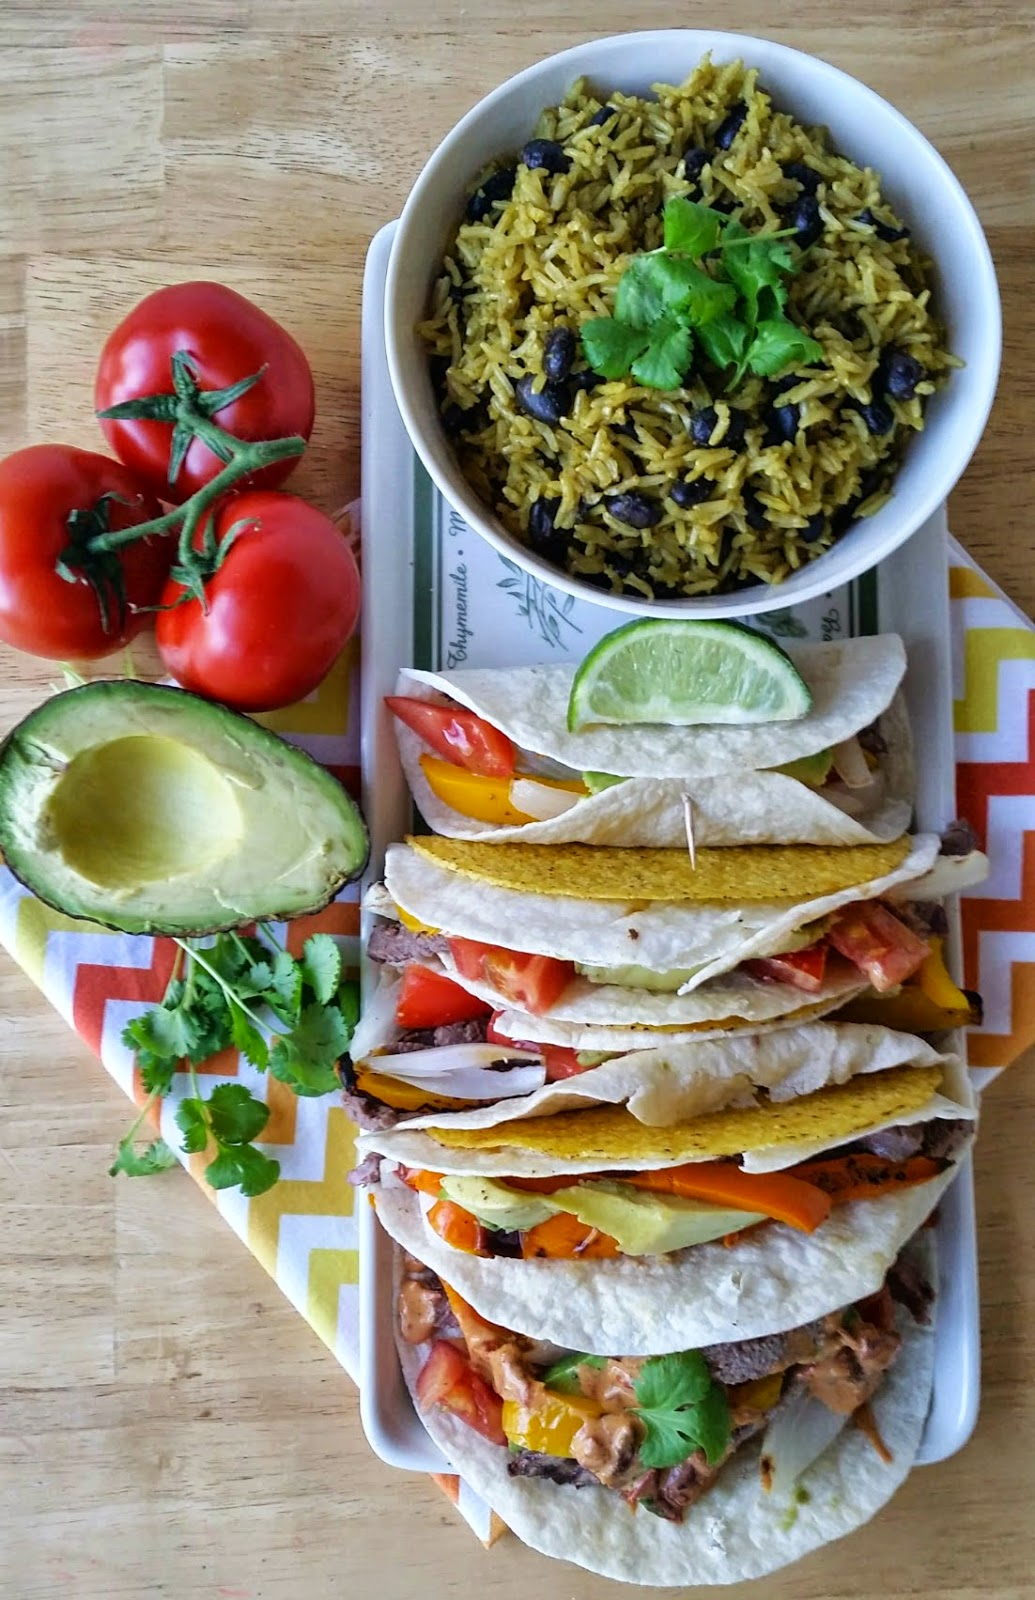 grilled beef tacos with chipotle aioli